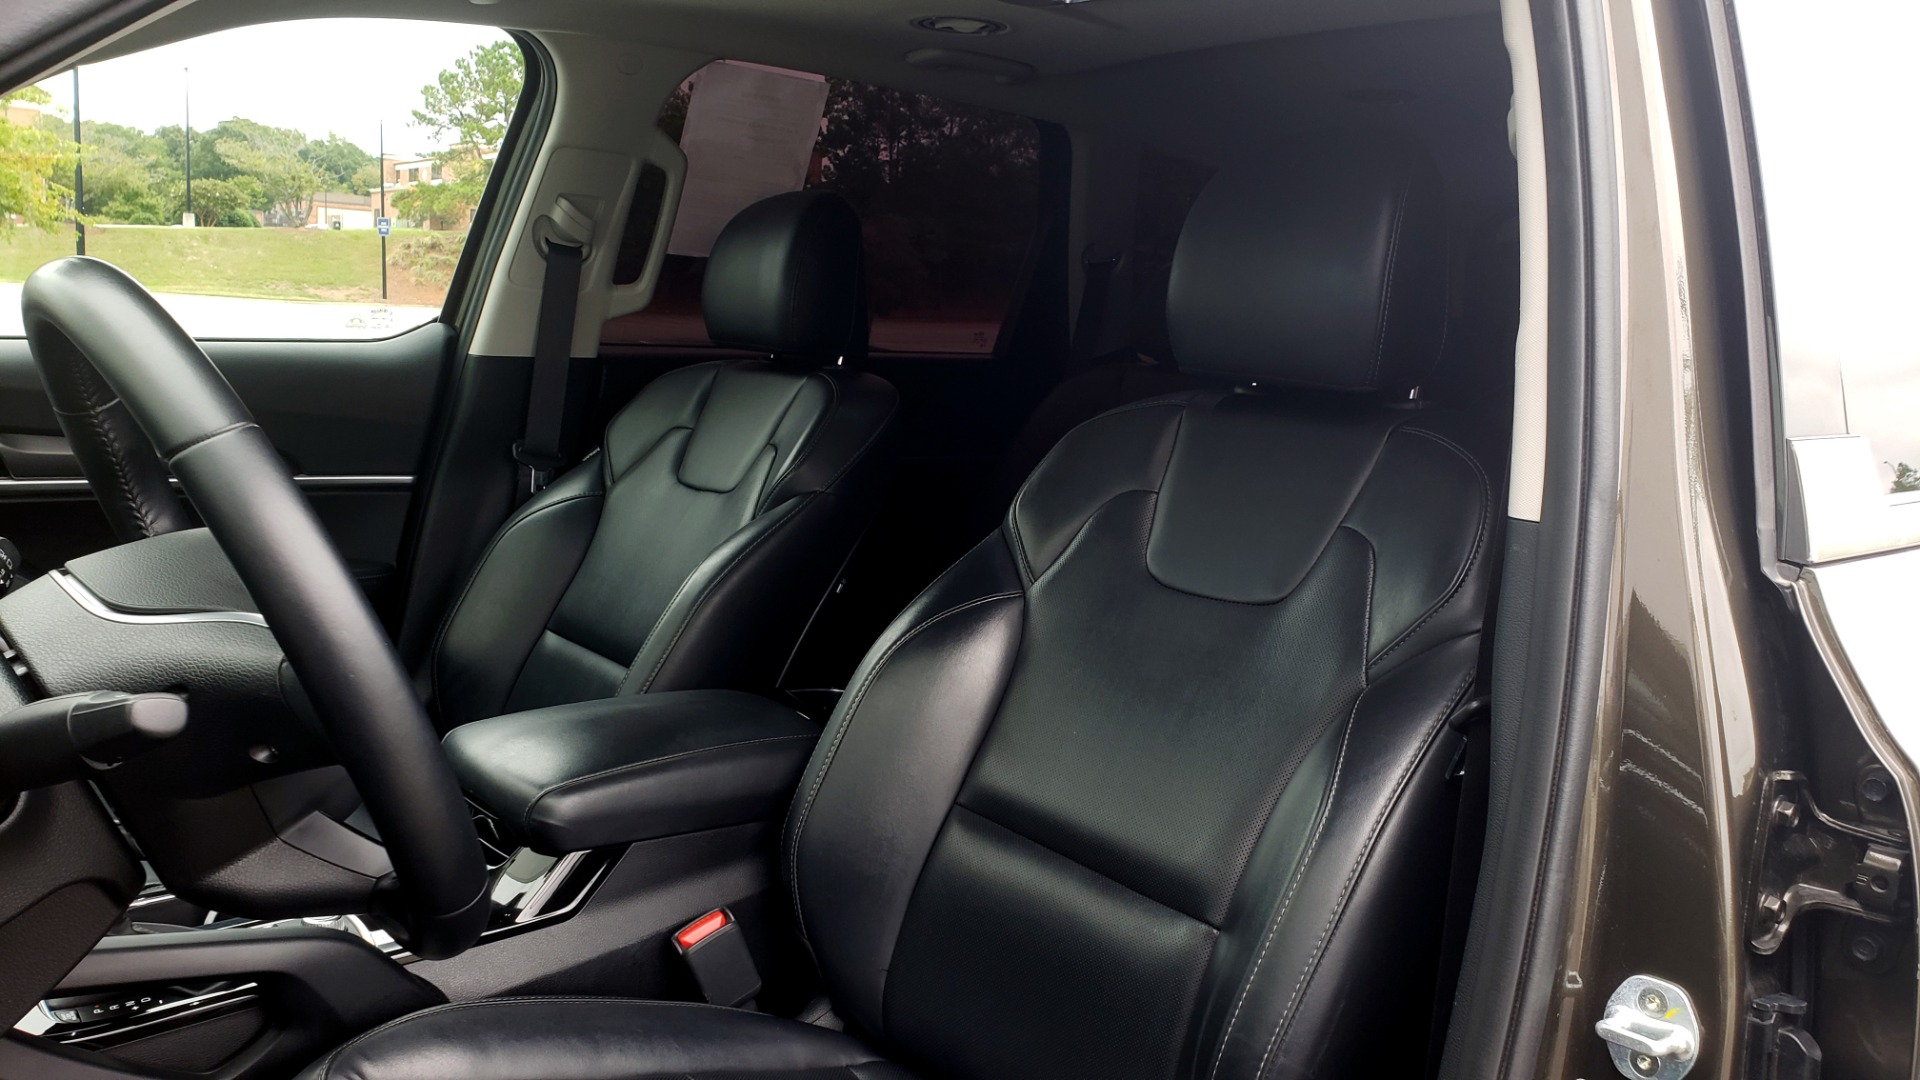 Used 2020 Kia TELLURIDE S 3.8L / FWD / 8-SPD AUTO / SUNROOF / REARVIEW / 20INCH WHEELS for sale $41,595 at Formula Imports in Charlotte NC 28227 38